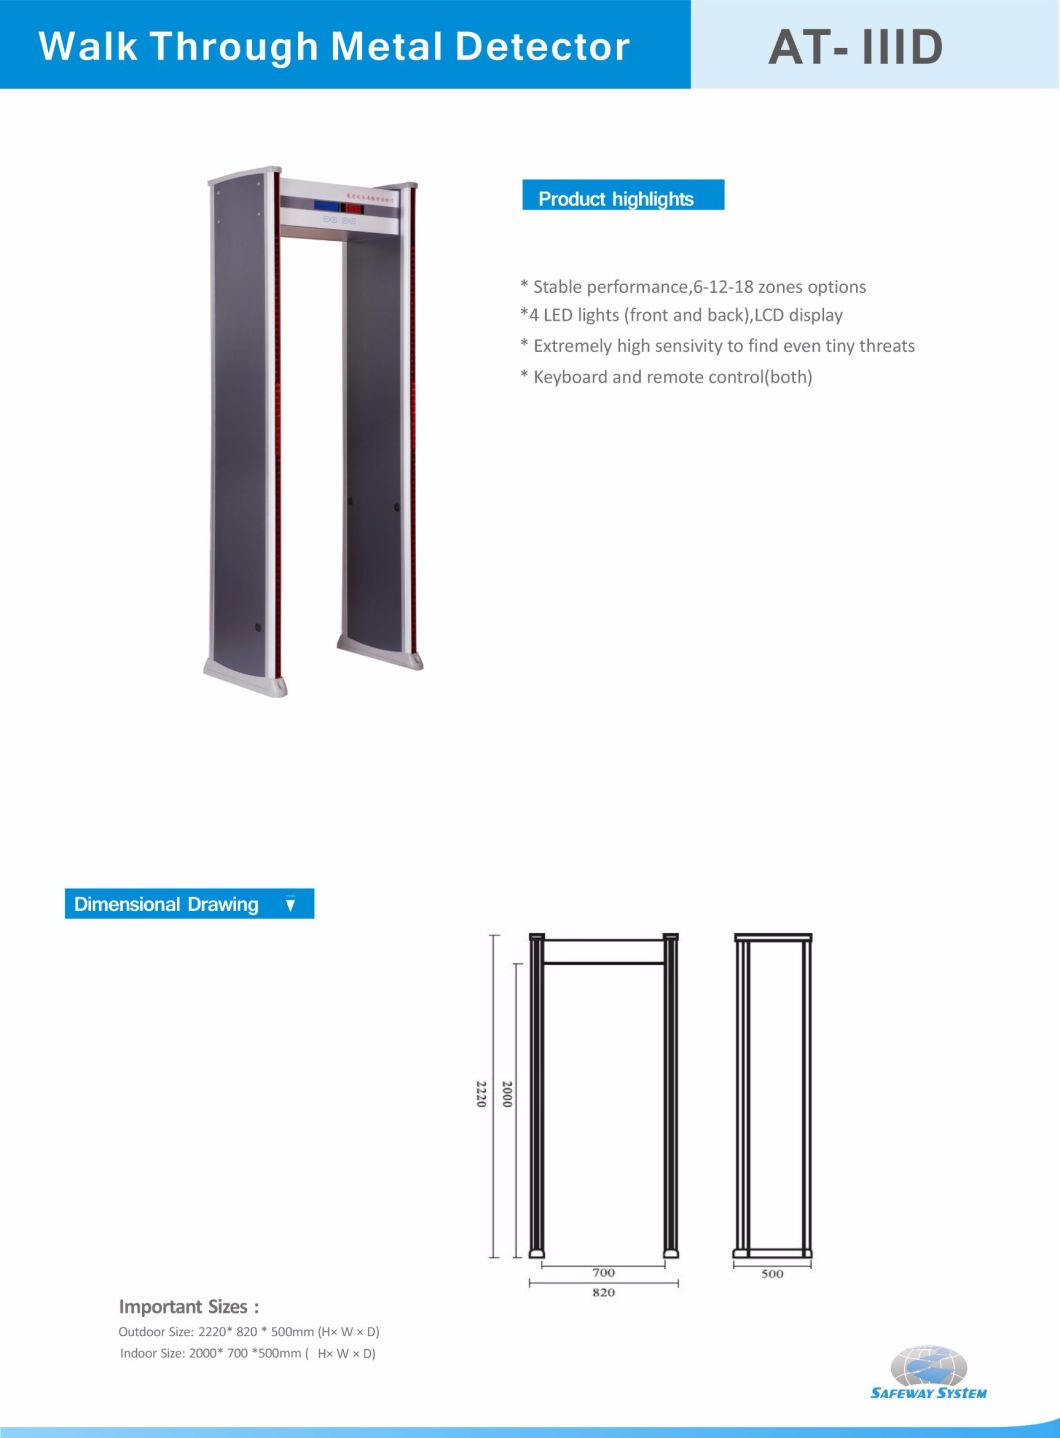 Walk Through Electronic Security Door Metal Detector - Safety Door